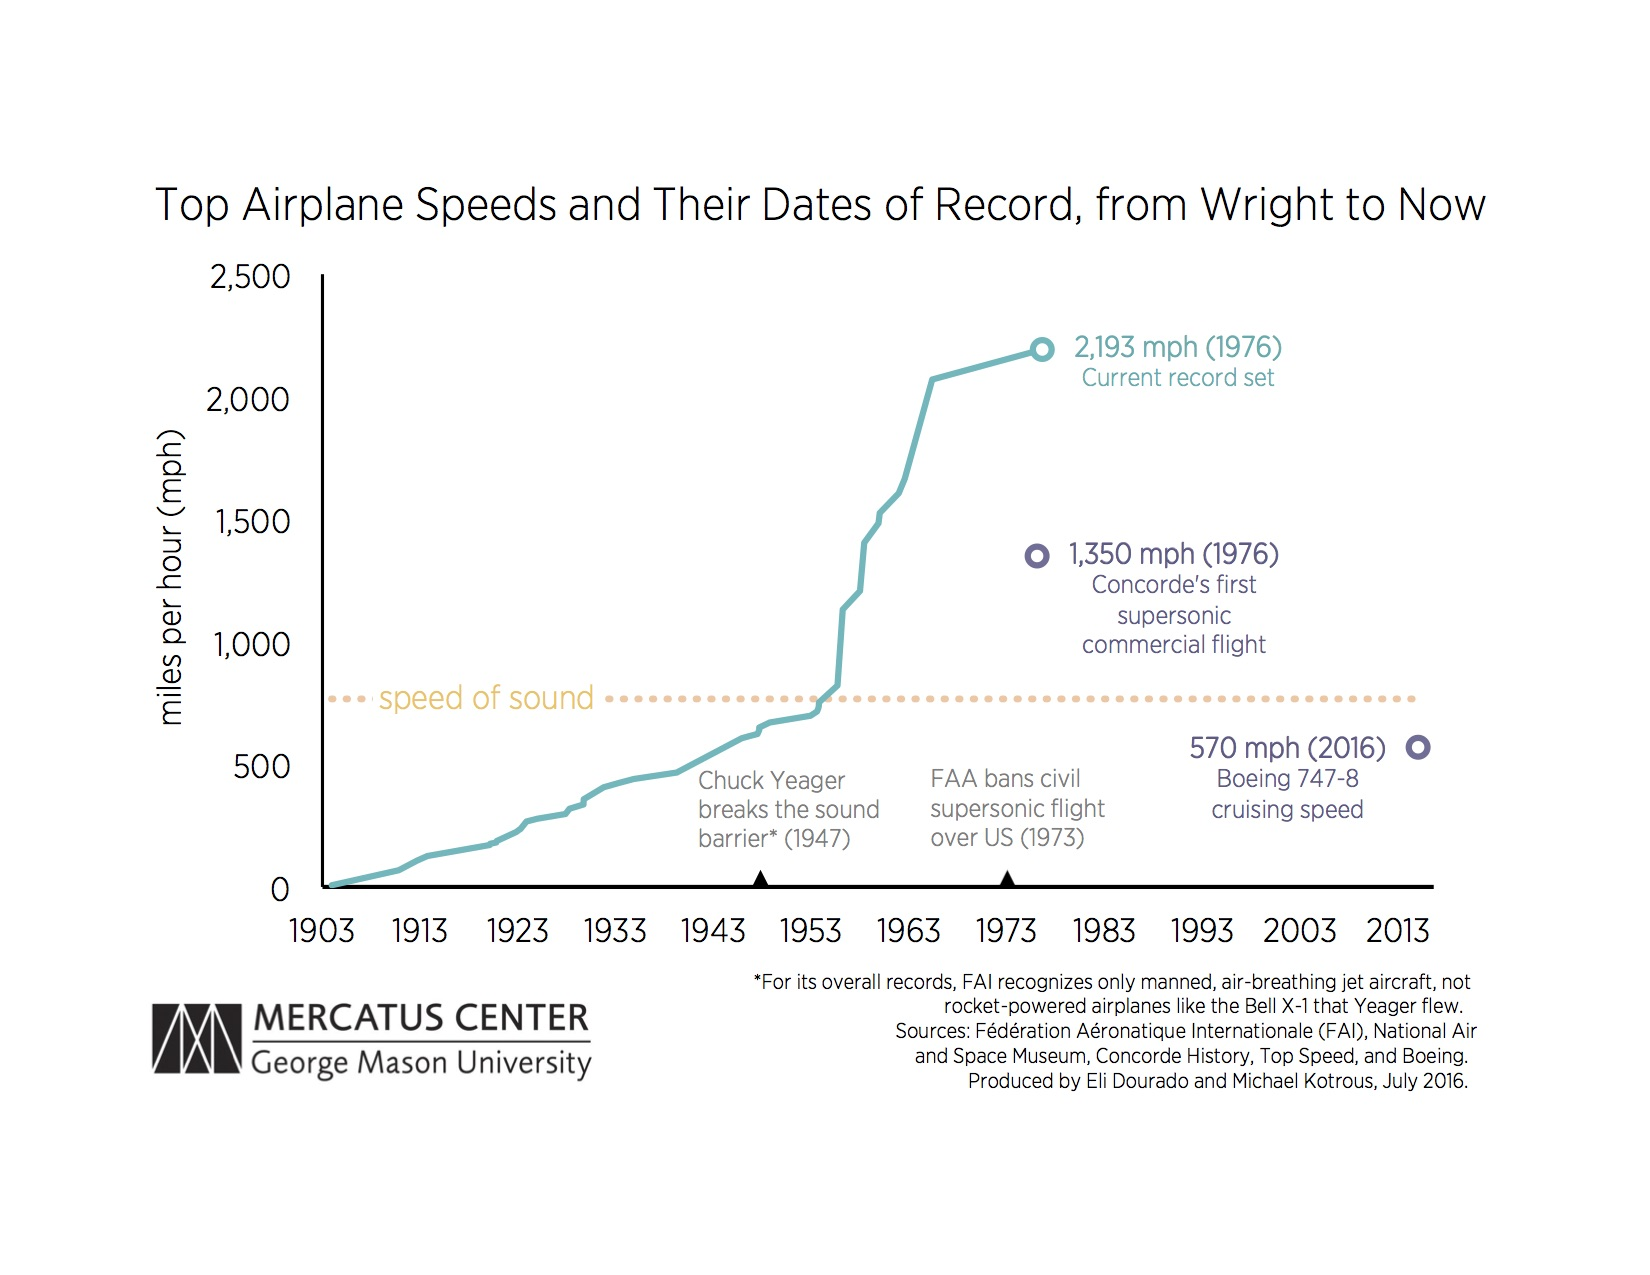 that same year, the concorde introduced the world to supersonic commercial  travel with the first passenger flights to break the sound barrier